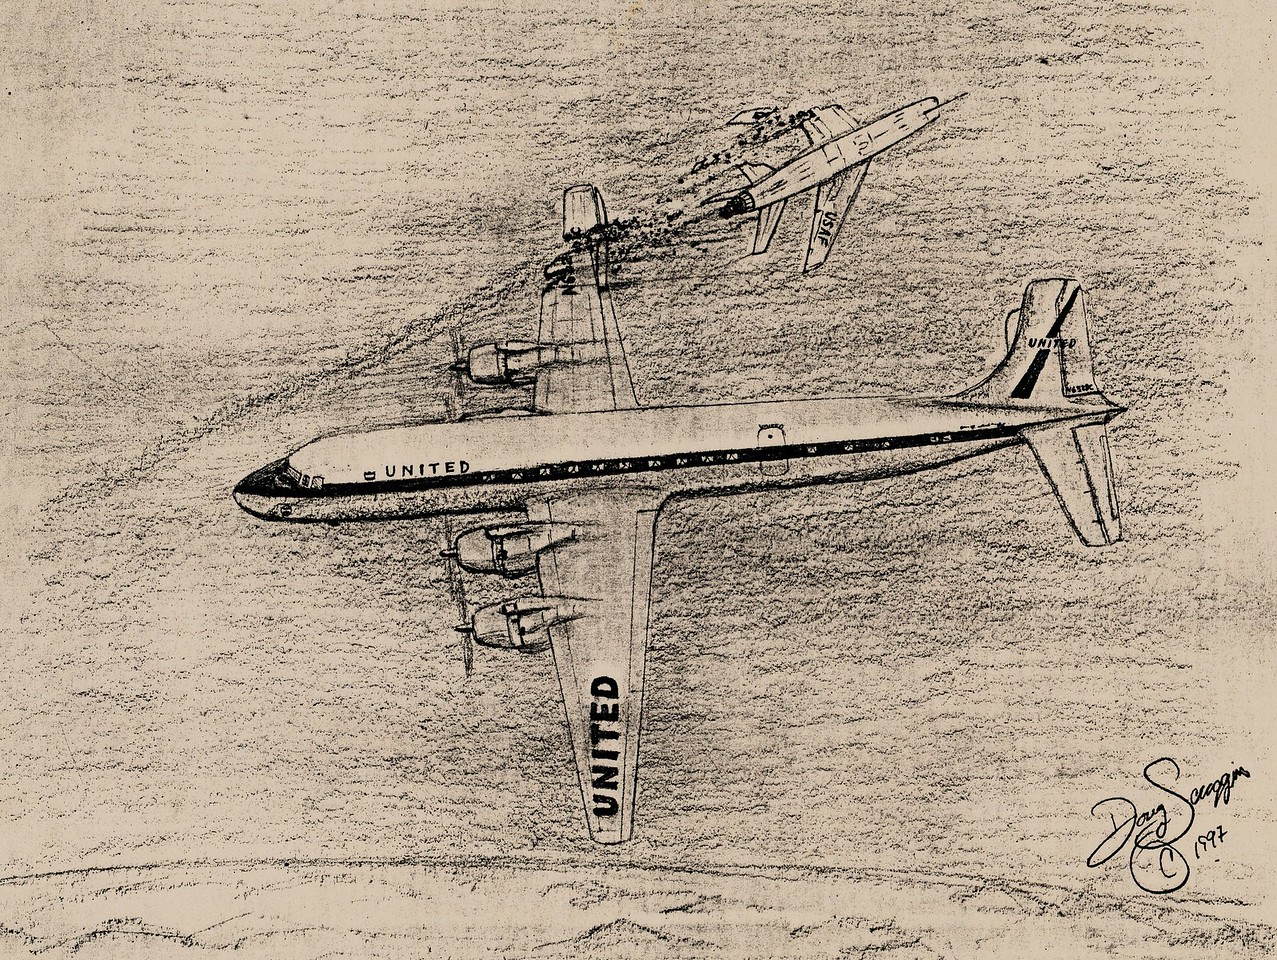 Similar to the 1956 Grand Canyon mid-air collision, the Las Vegas collision also occurred at 21,000 feet on a clear morning.  <br /> <br /> The near head-on collision and resulting aircraft descents were witnessed by many people in the Las Vegas area. (Courtesy of Doug Scroggins)